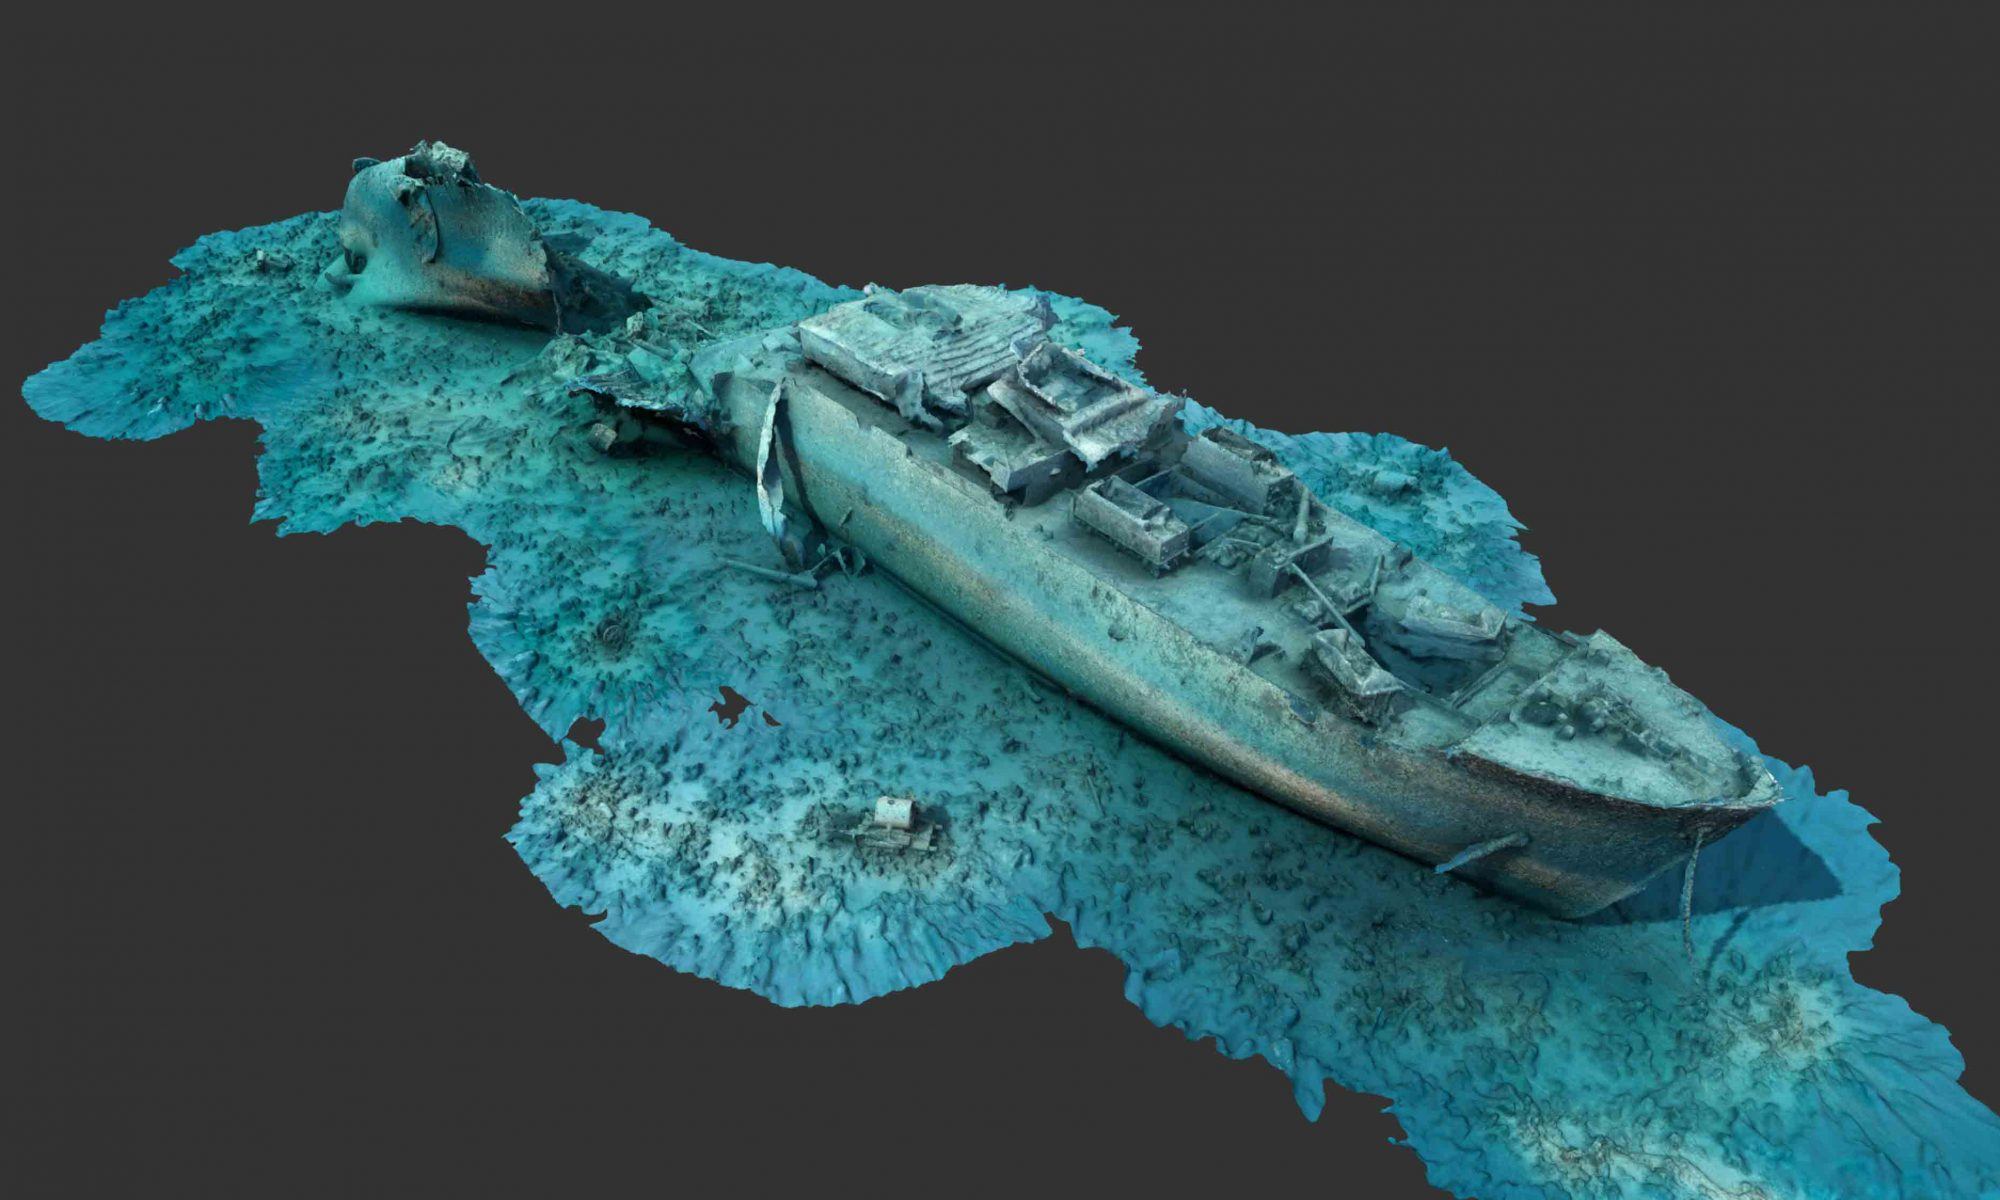 Wreck Photogrammetry Studio